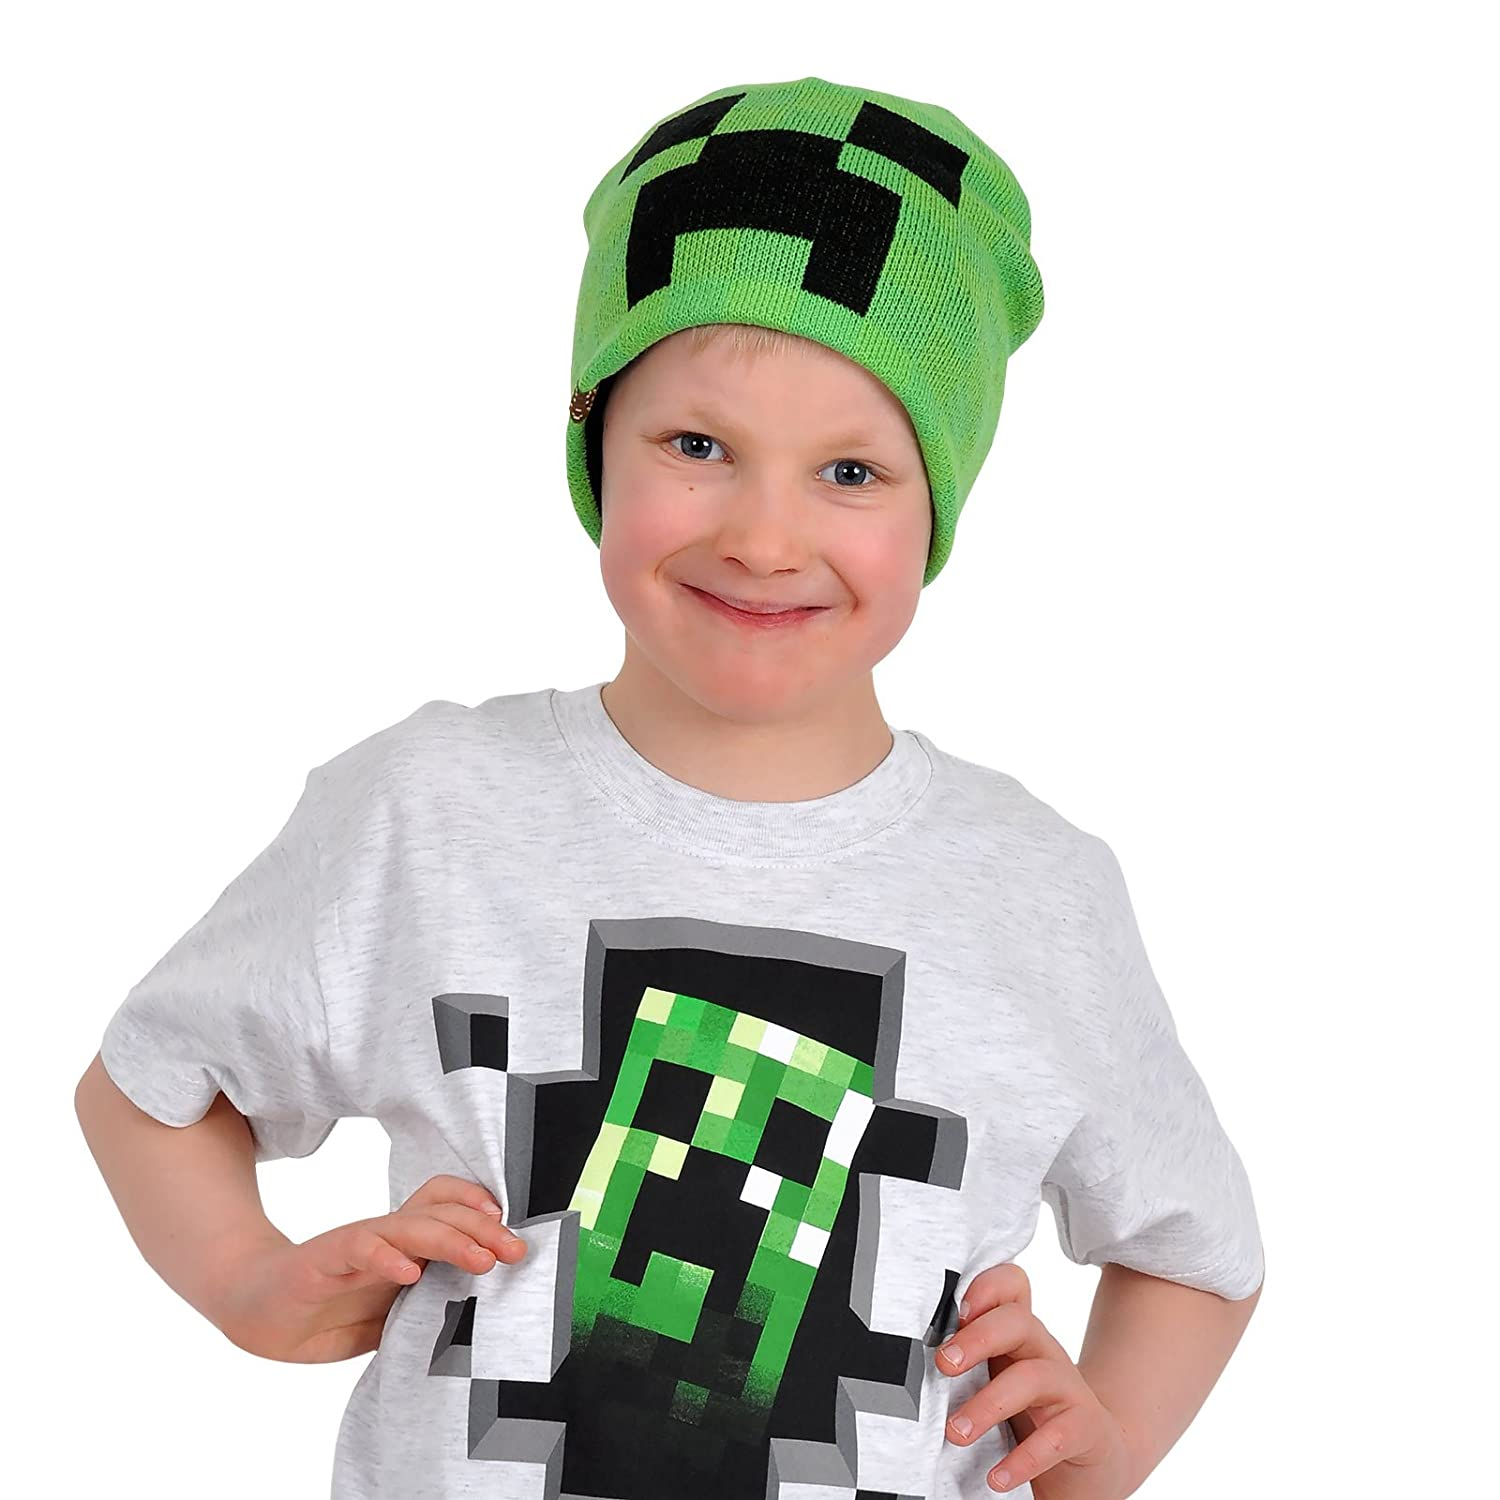 MINECRAFT Cappetto Berretto CREEPER Cactus Pixel ORIGINALE Ufficiale Beanie